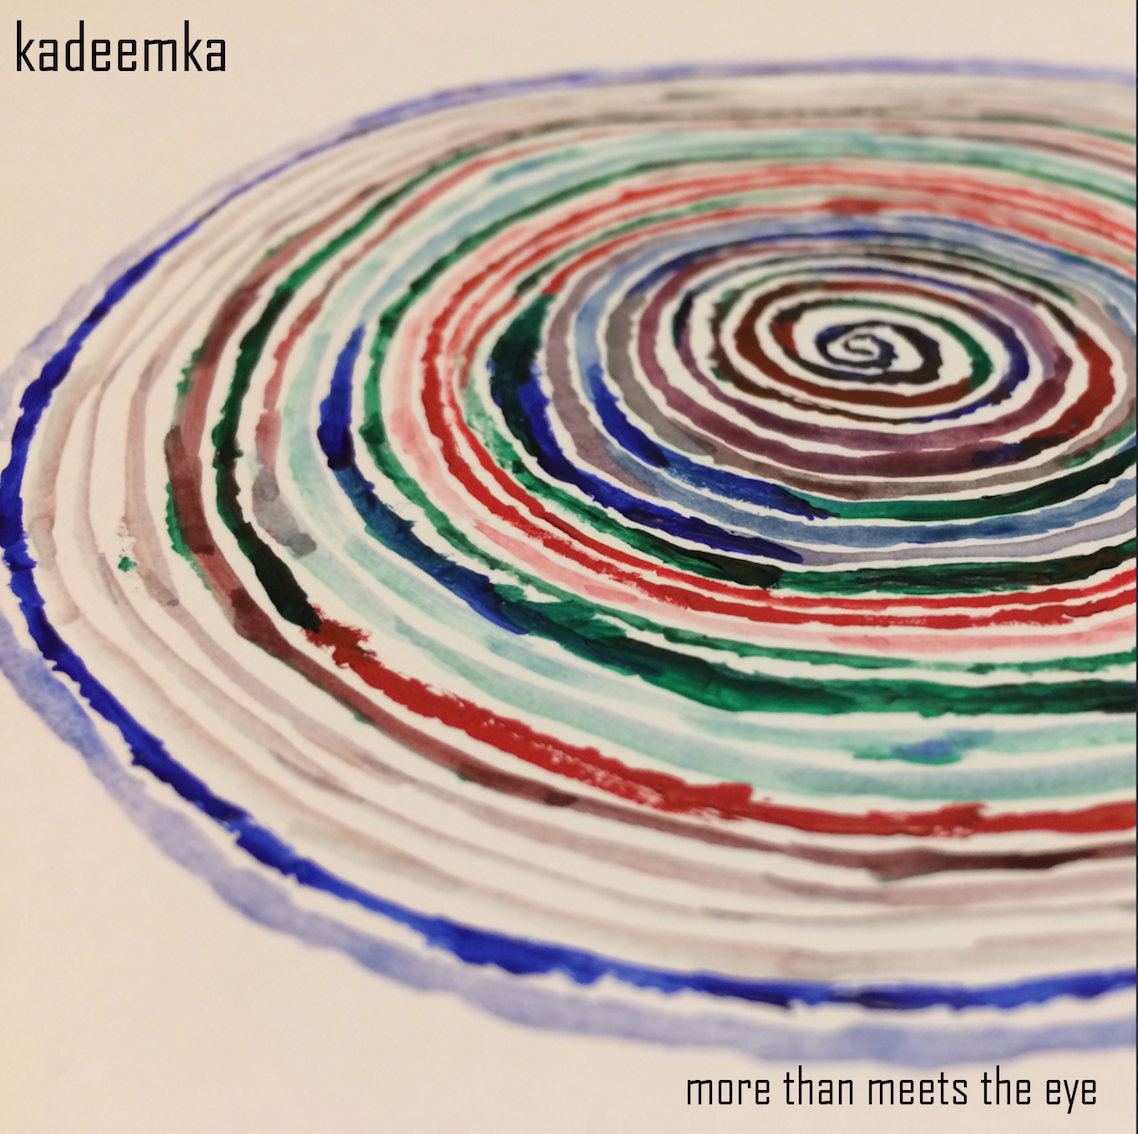 Kadeemka album more than meets the eye